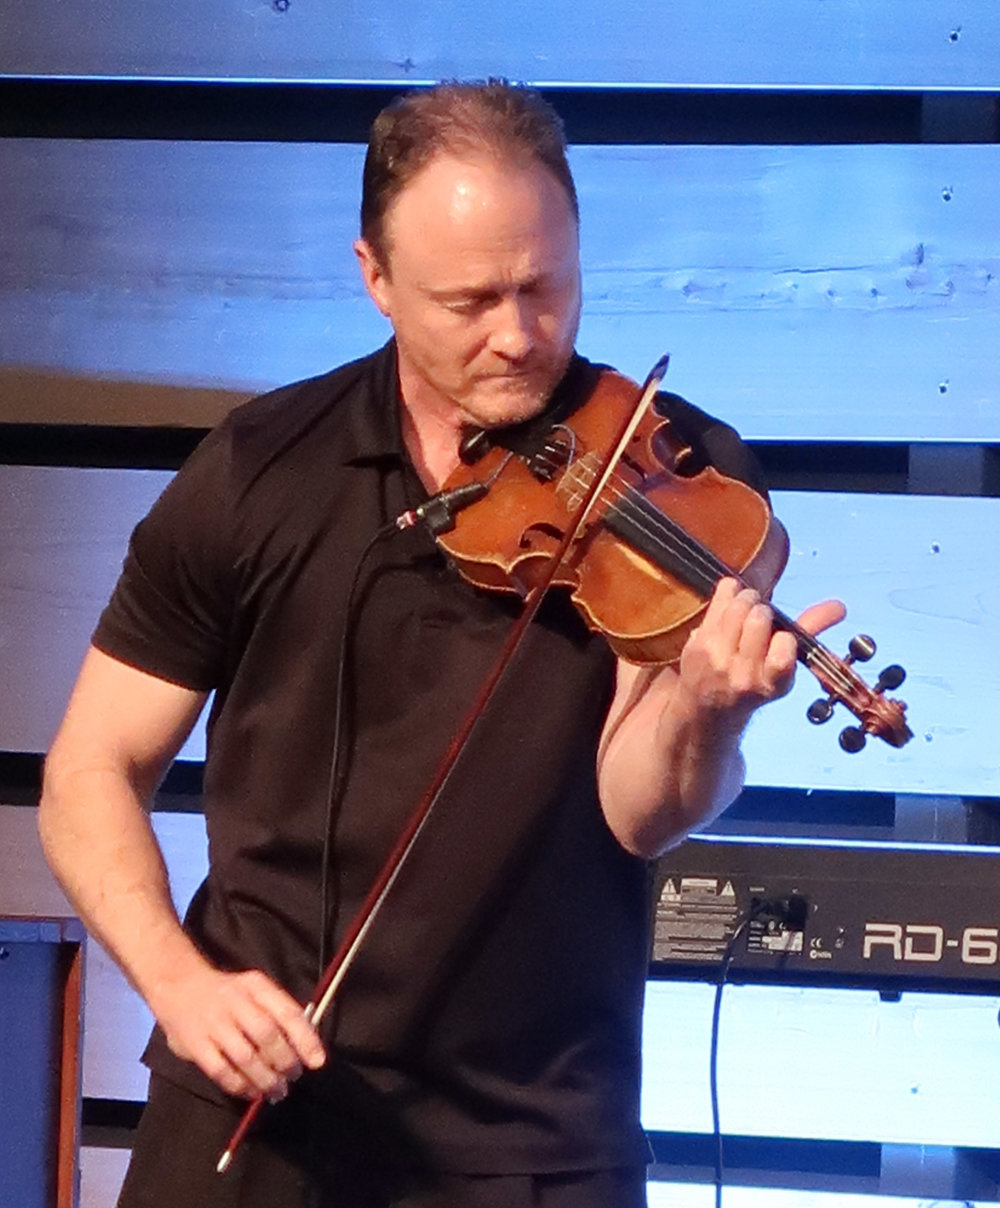 John Myhro performs at the conference.